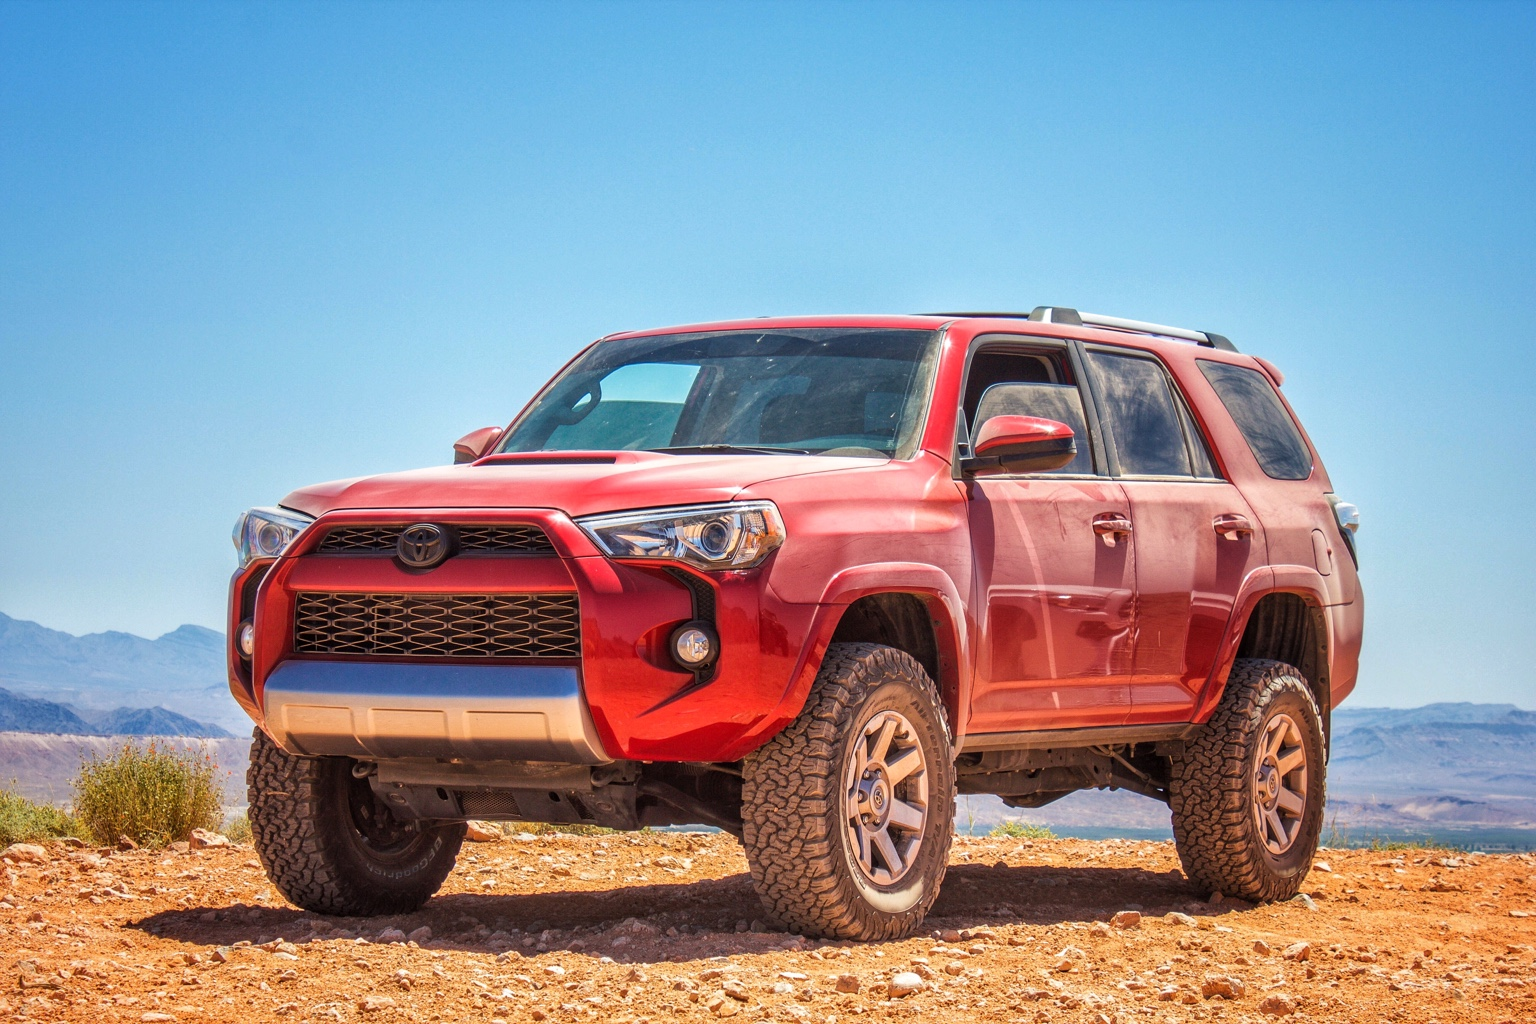 Barcelona Red 4runners Let S See Them Page 10 Toyota